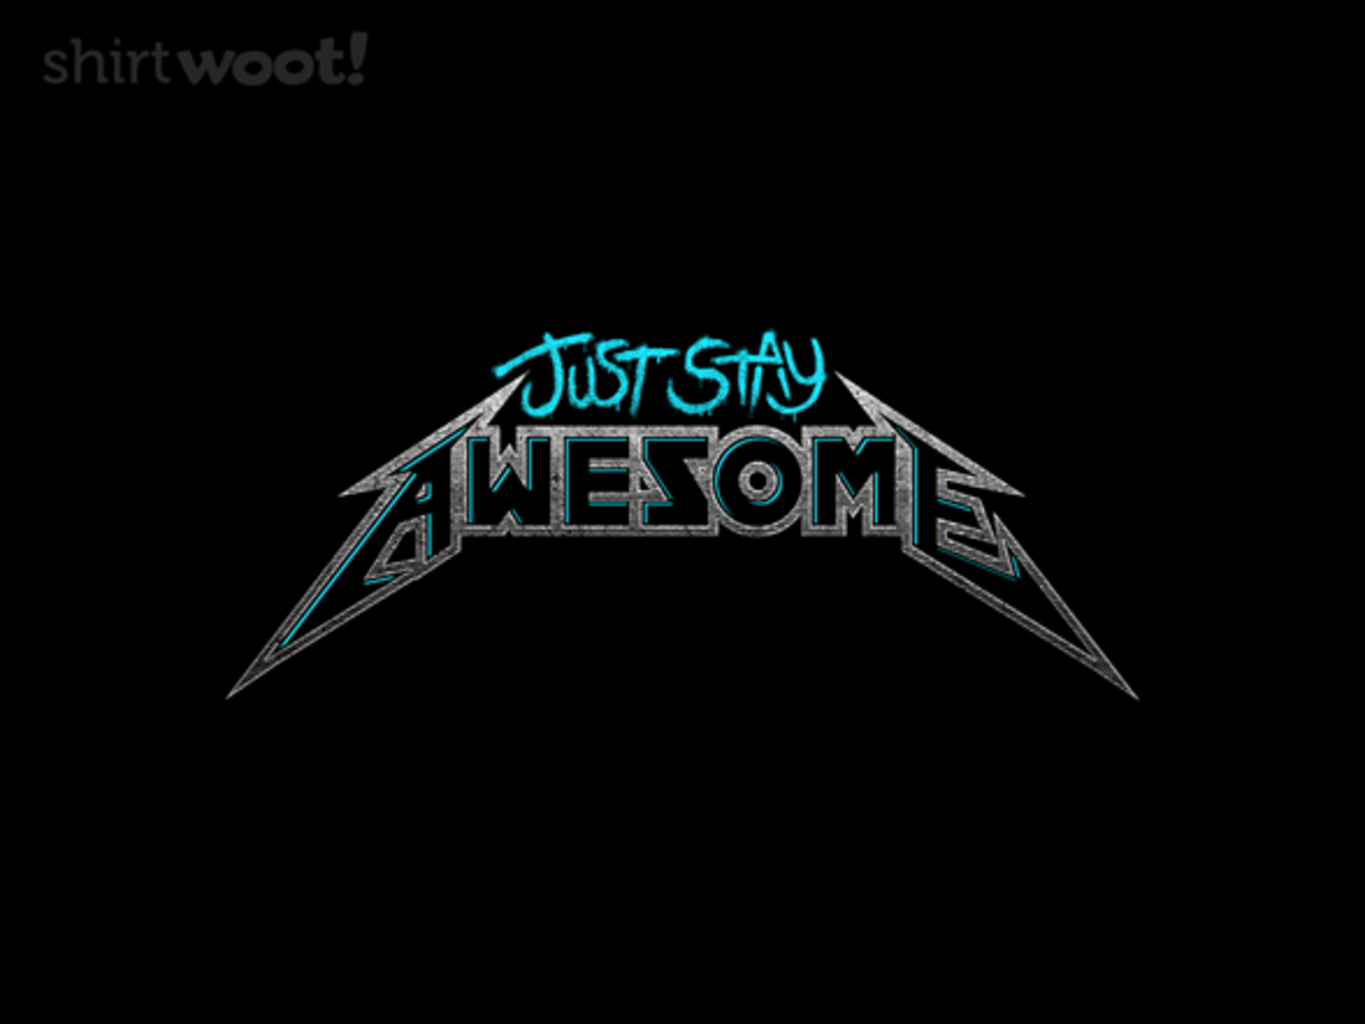 Woot!: Just Stay Awesome